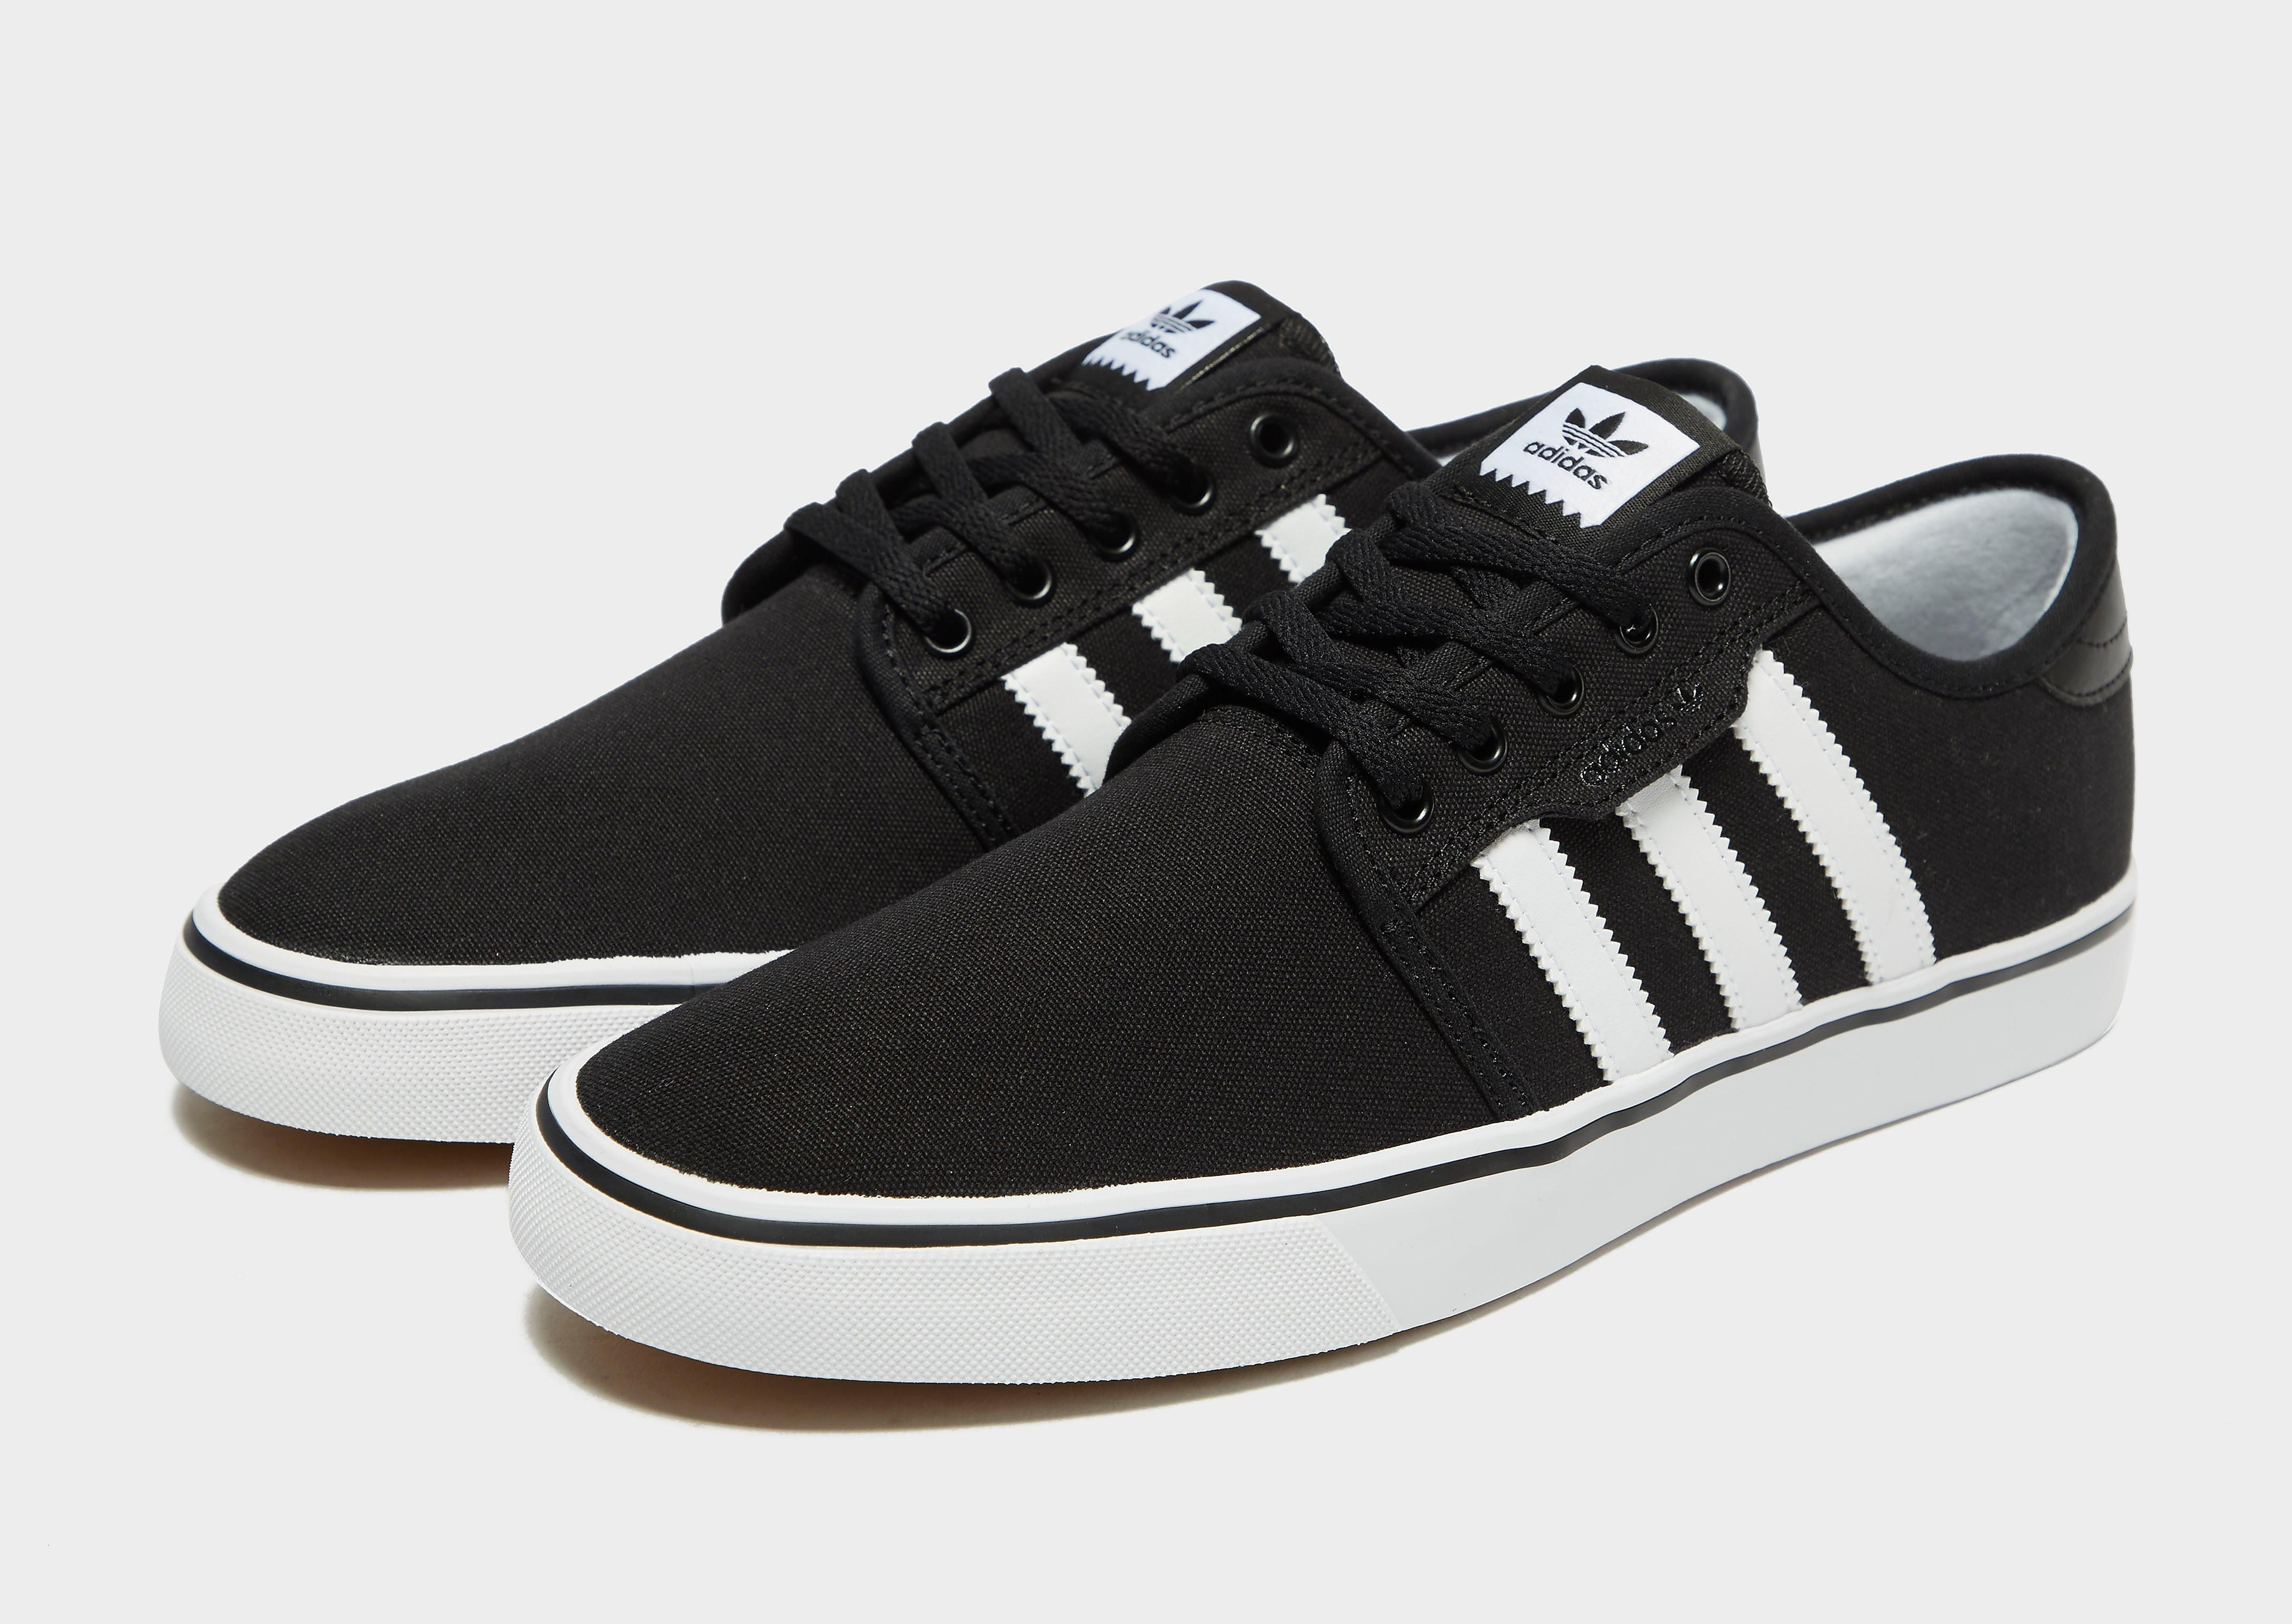 Seeley adidas Originals de hombre de color Negro